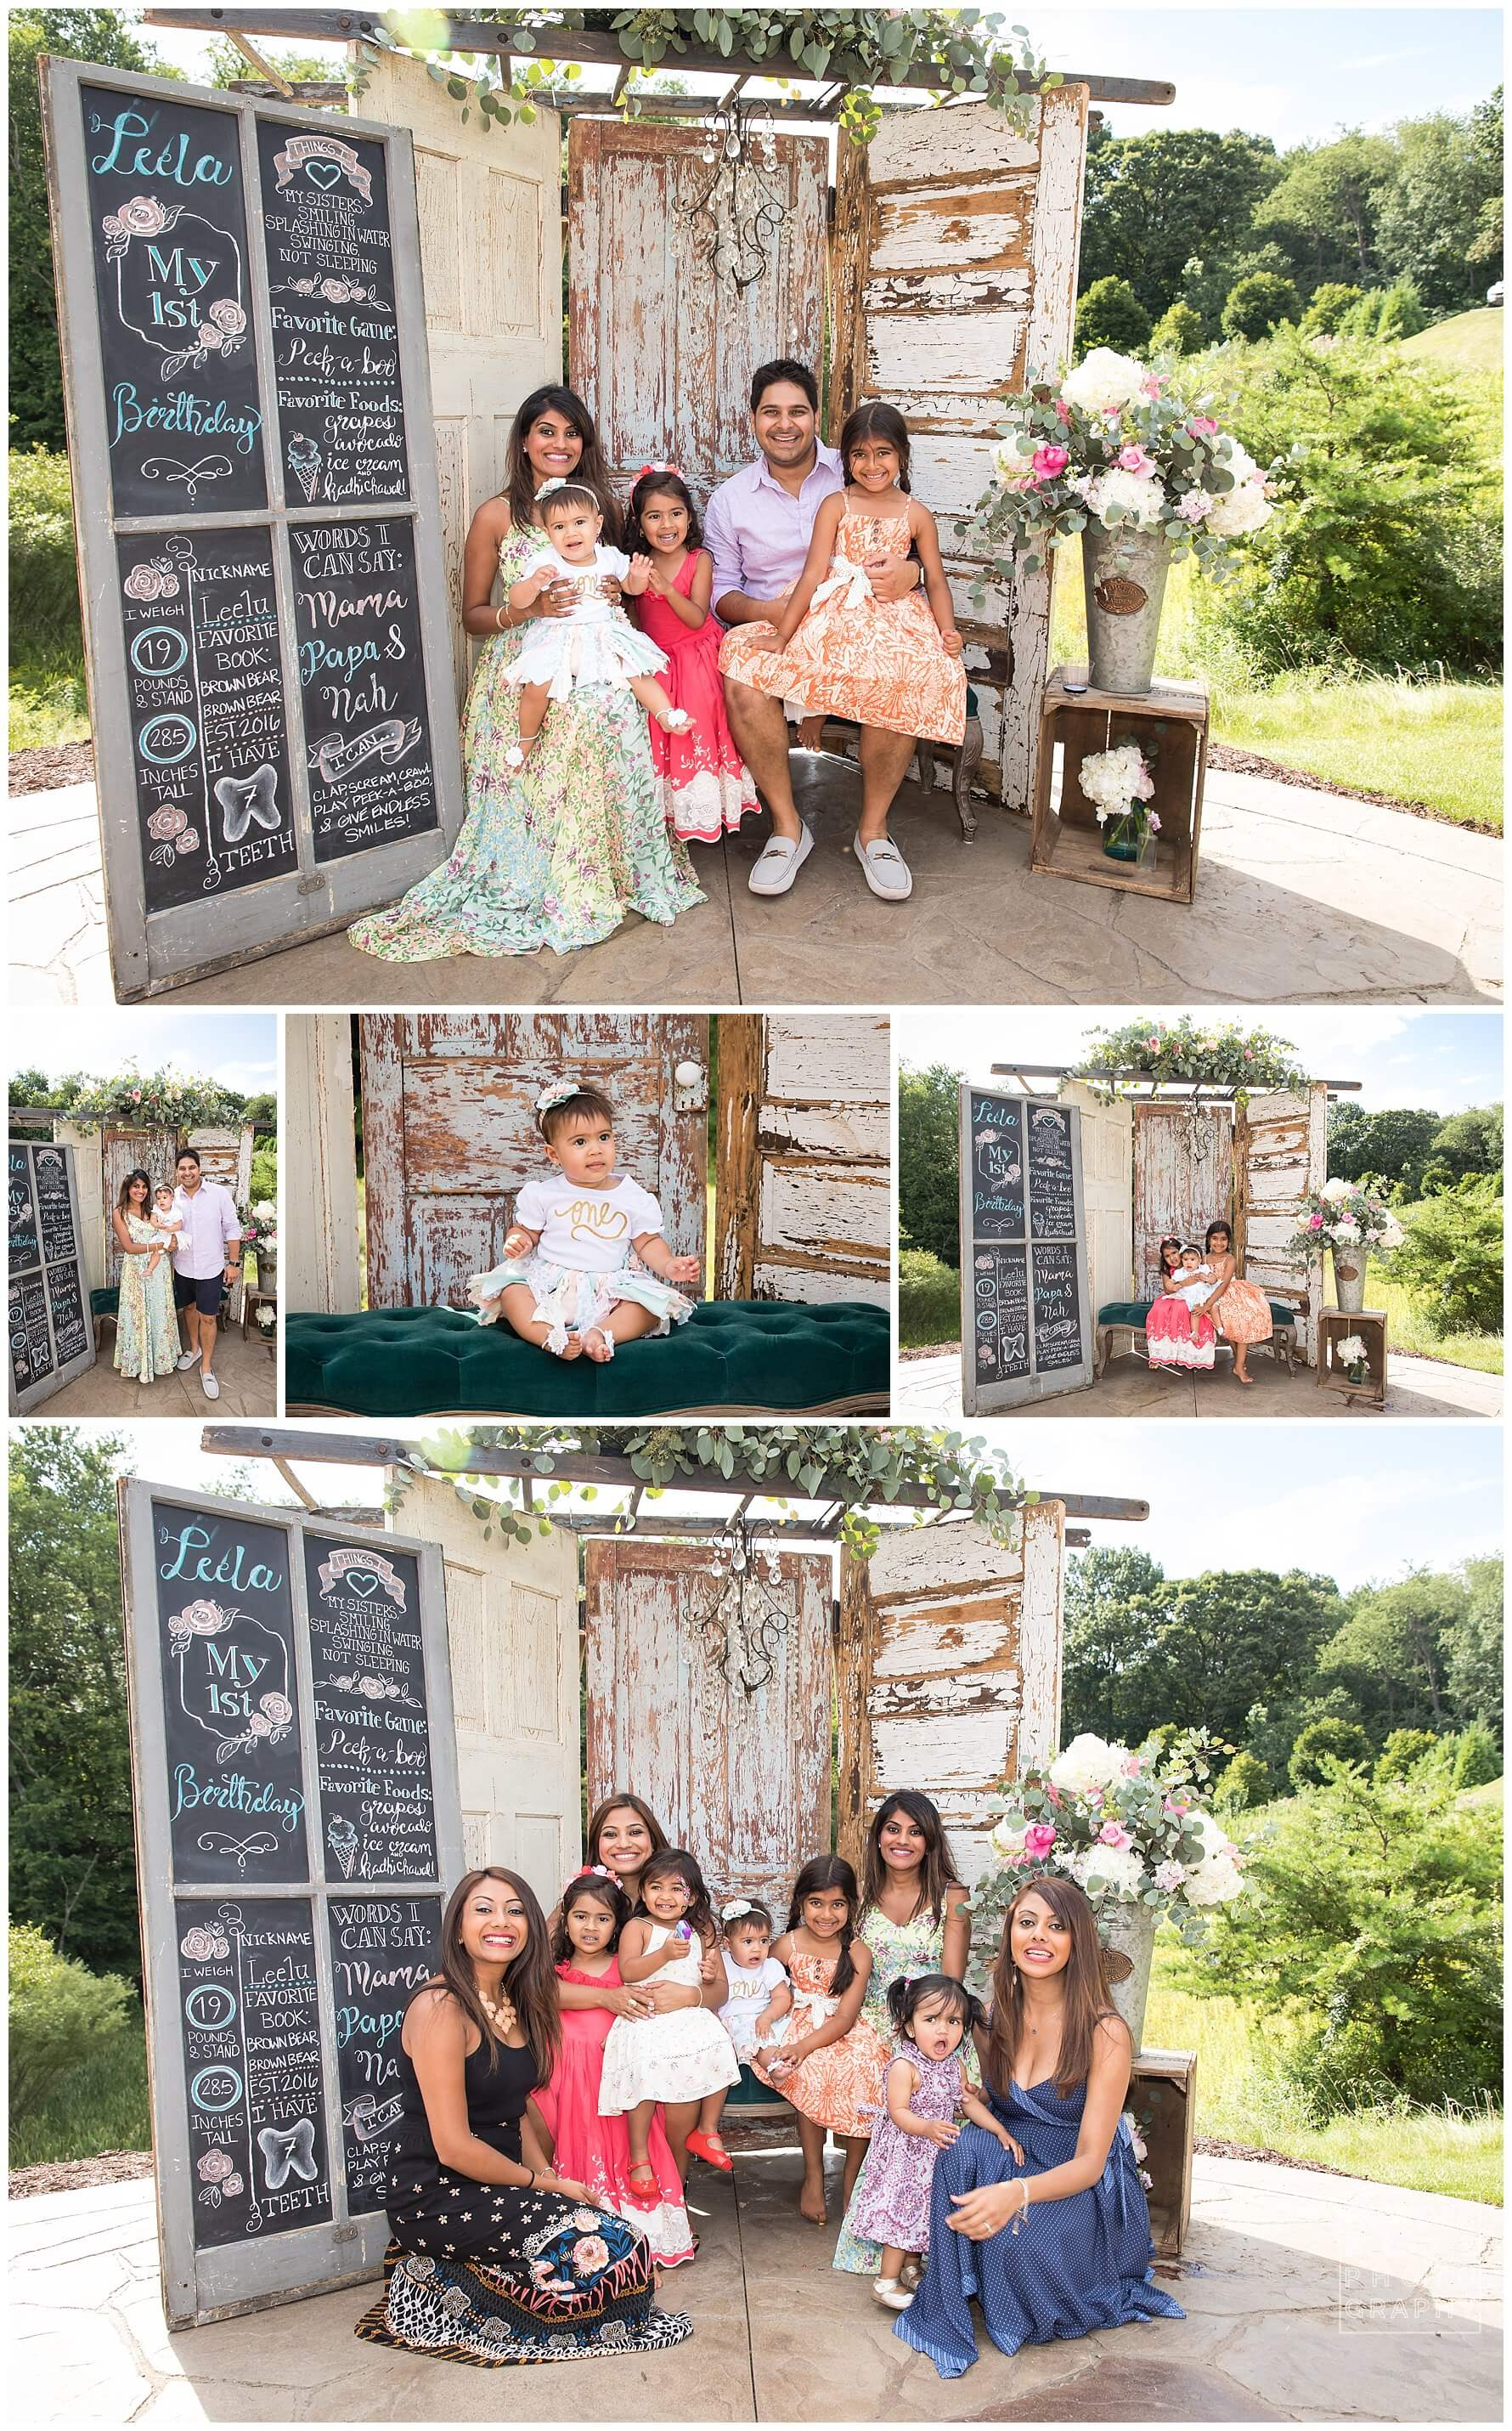 barn doors backdrop for photo booth. first birthday party decor shabby chic rustic.